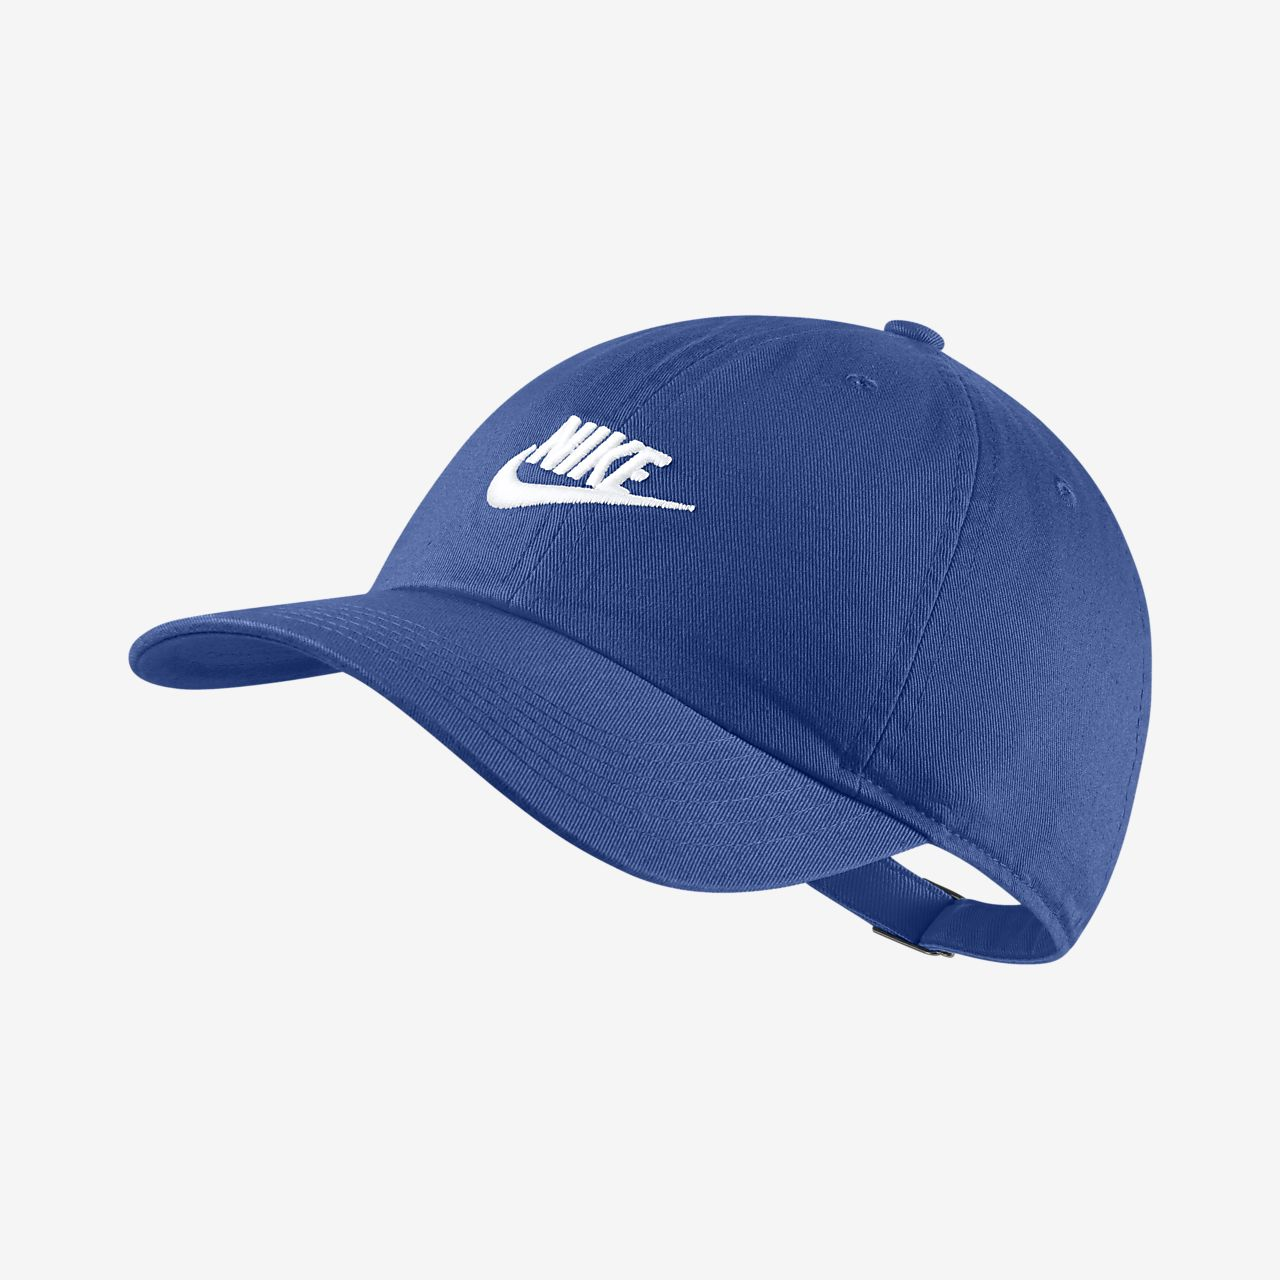 3e9d0b2816532 Nike Heritage86 Kids  Adjustable Hat. Nike.com AU